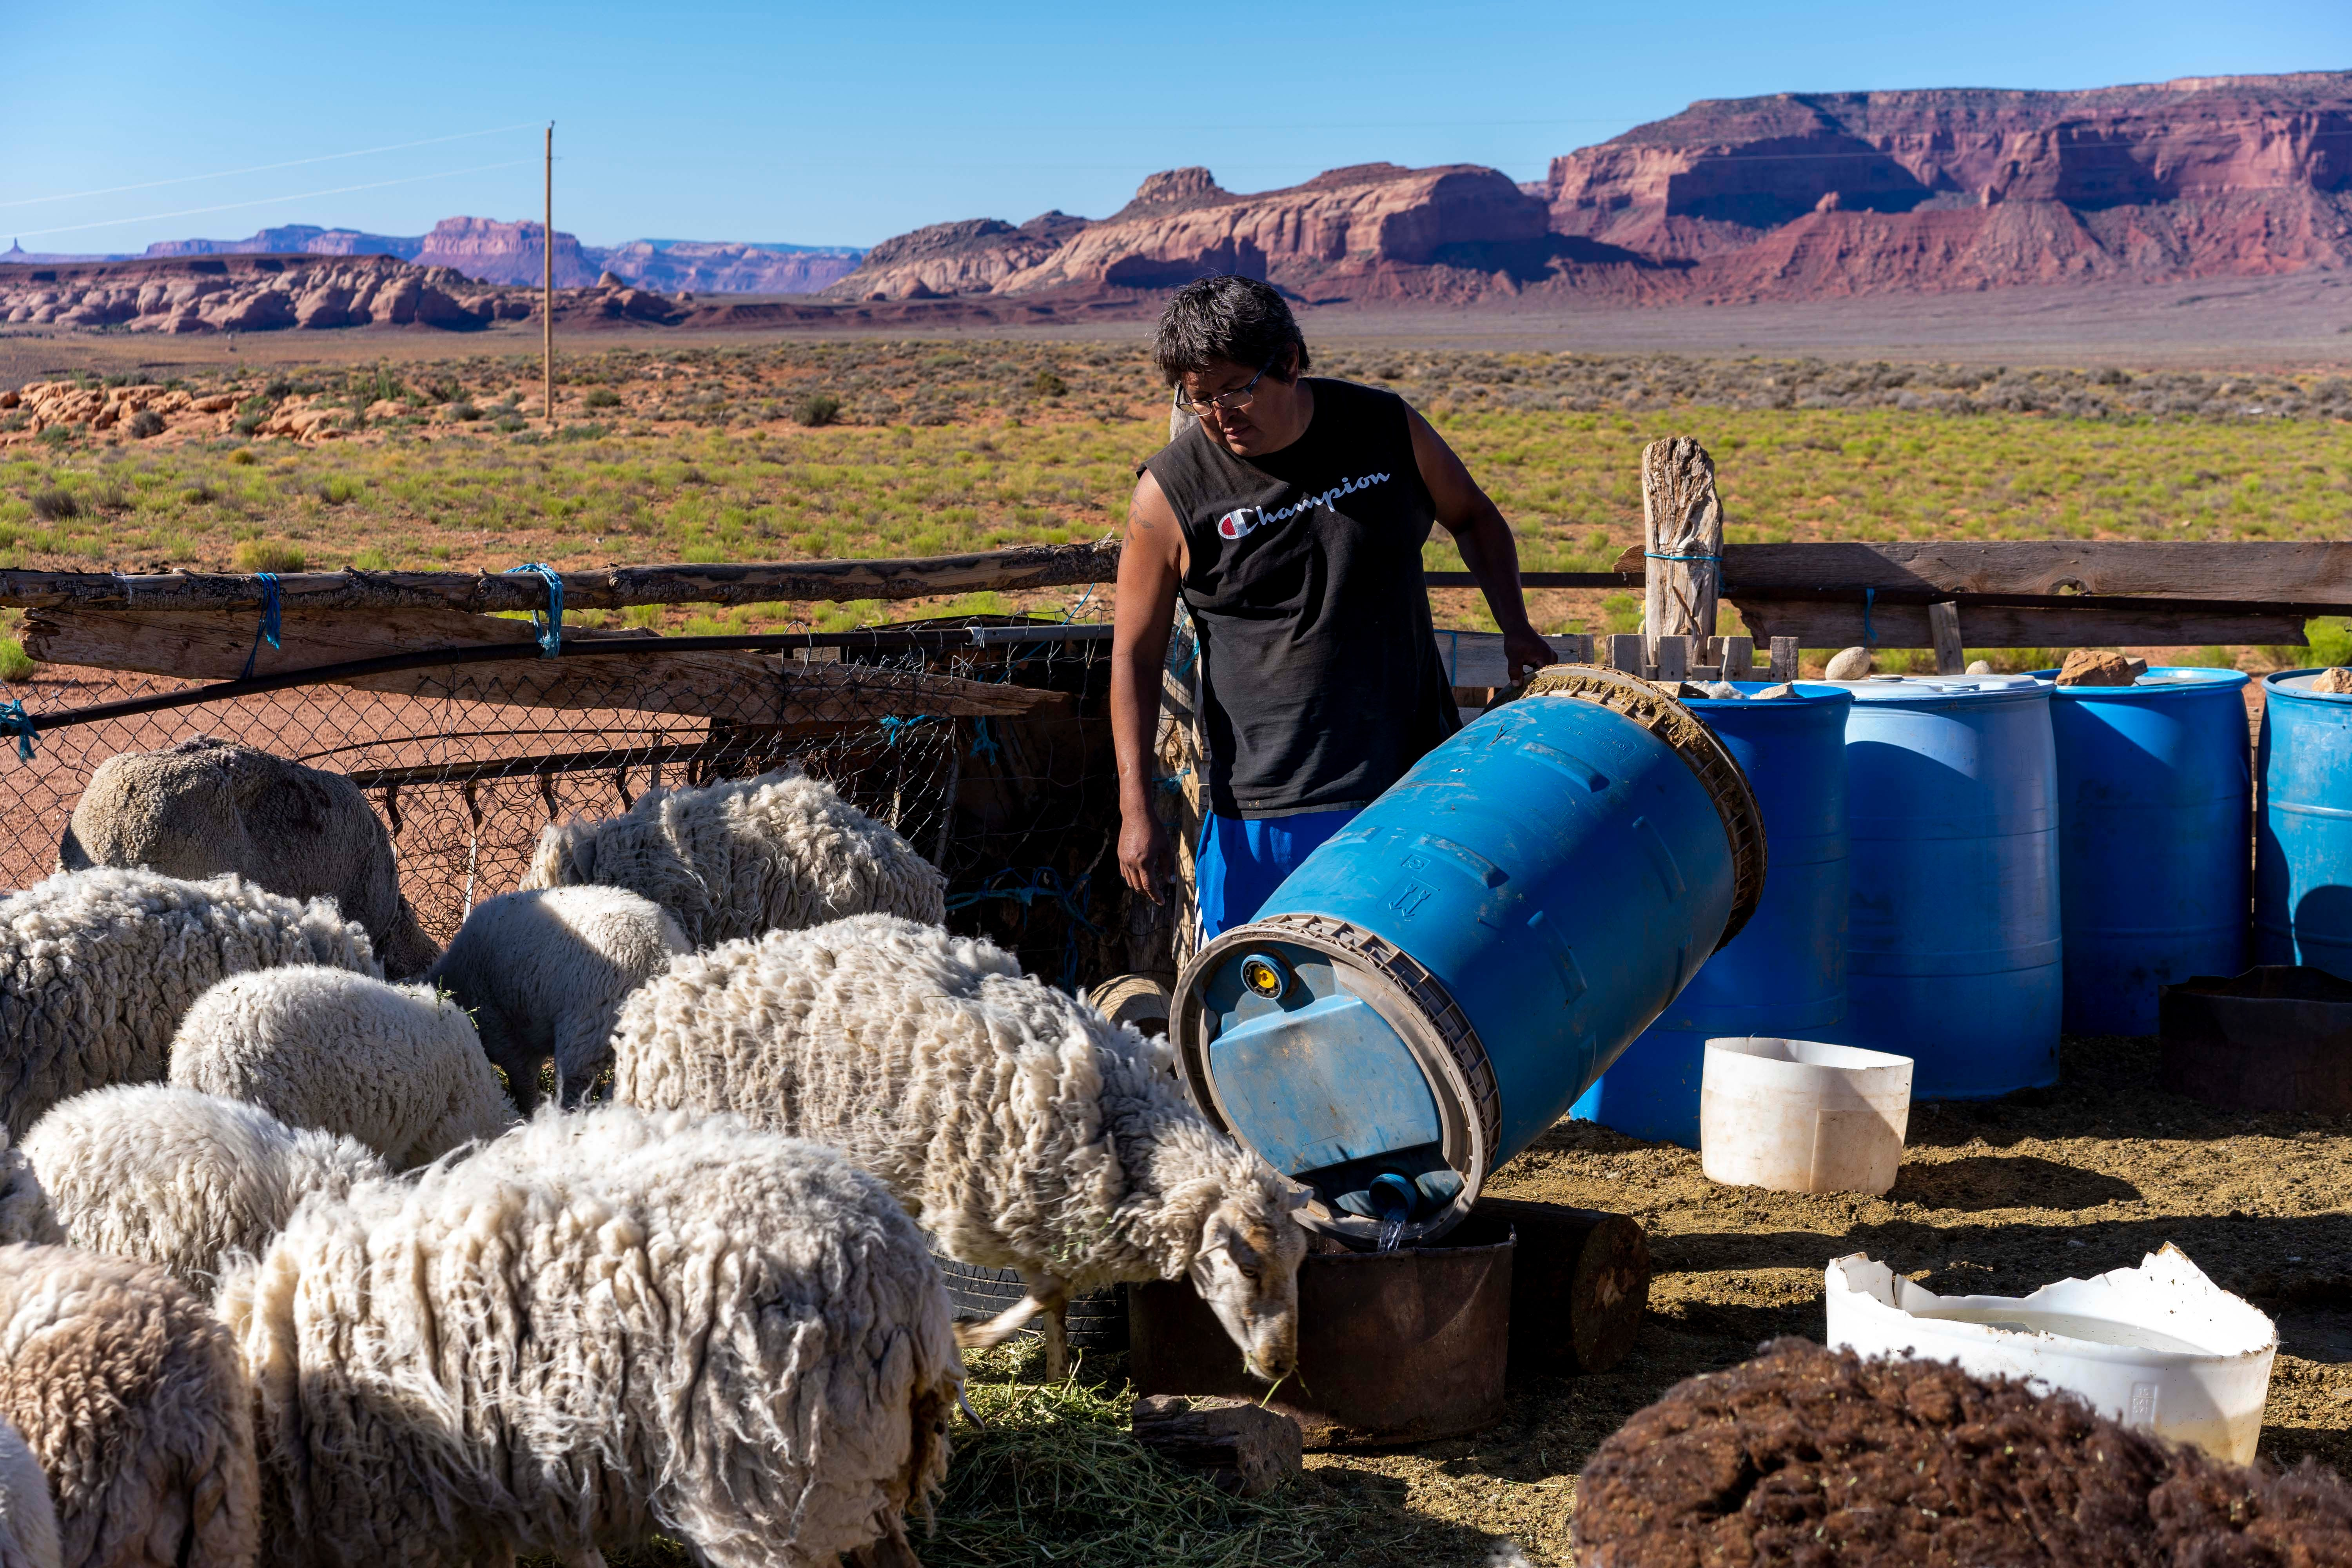 Tommy Rock pours water for his family's sheep at their home in Oljato, Utah.